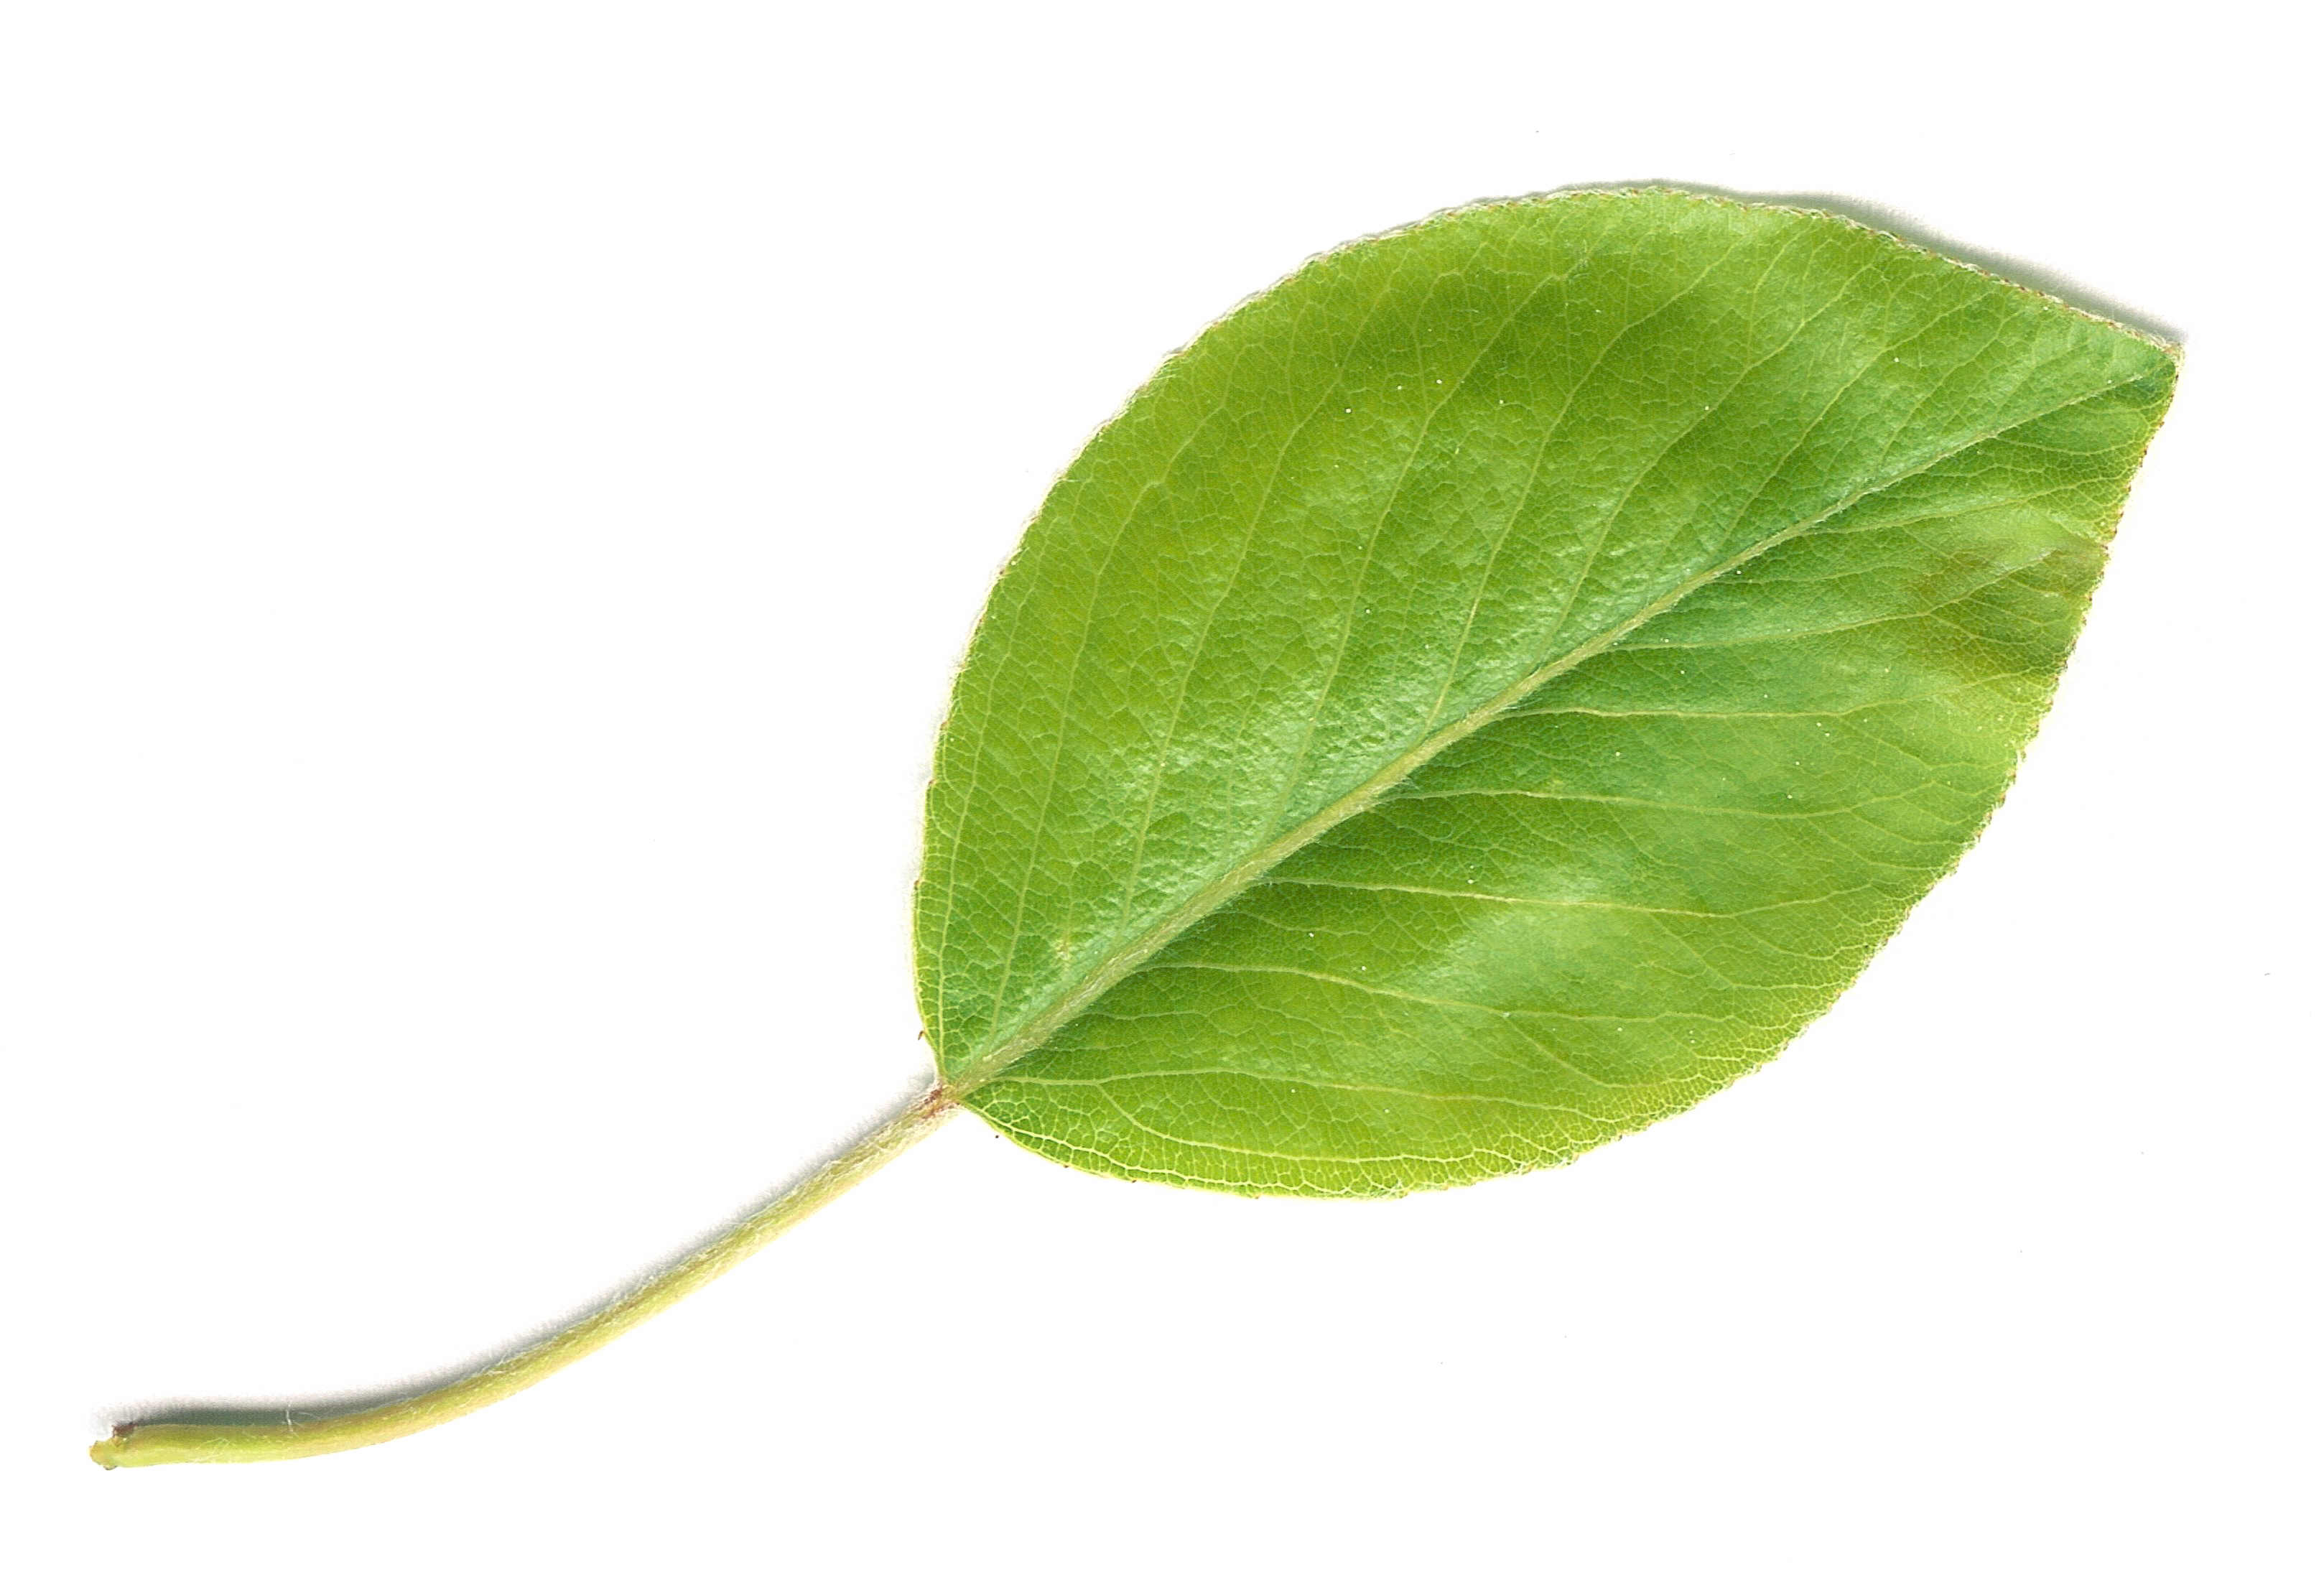 File:Pear Leaf.jpg